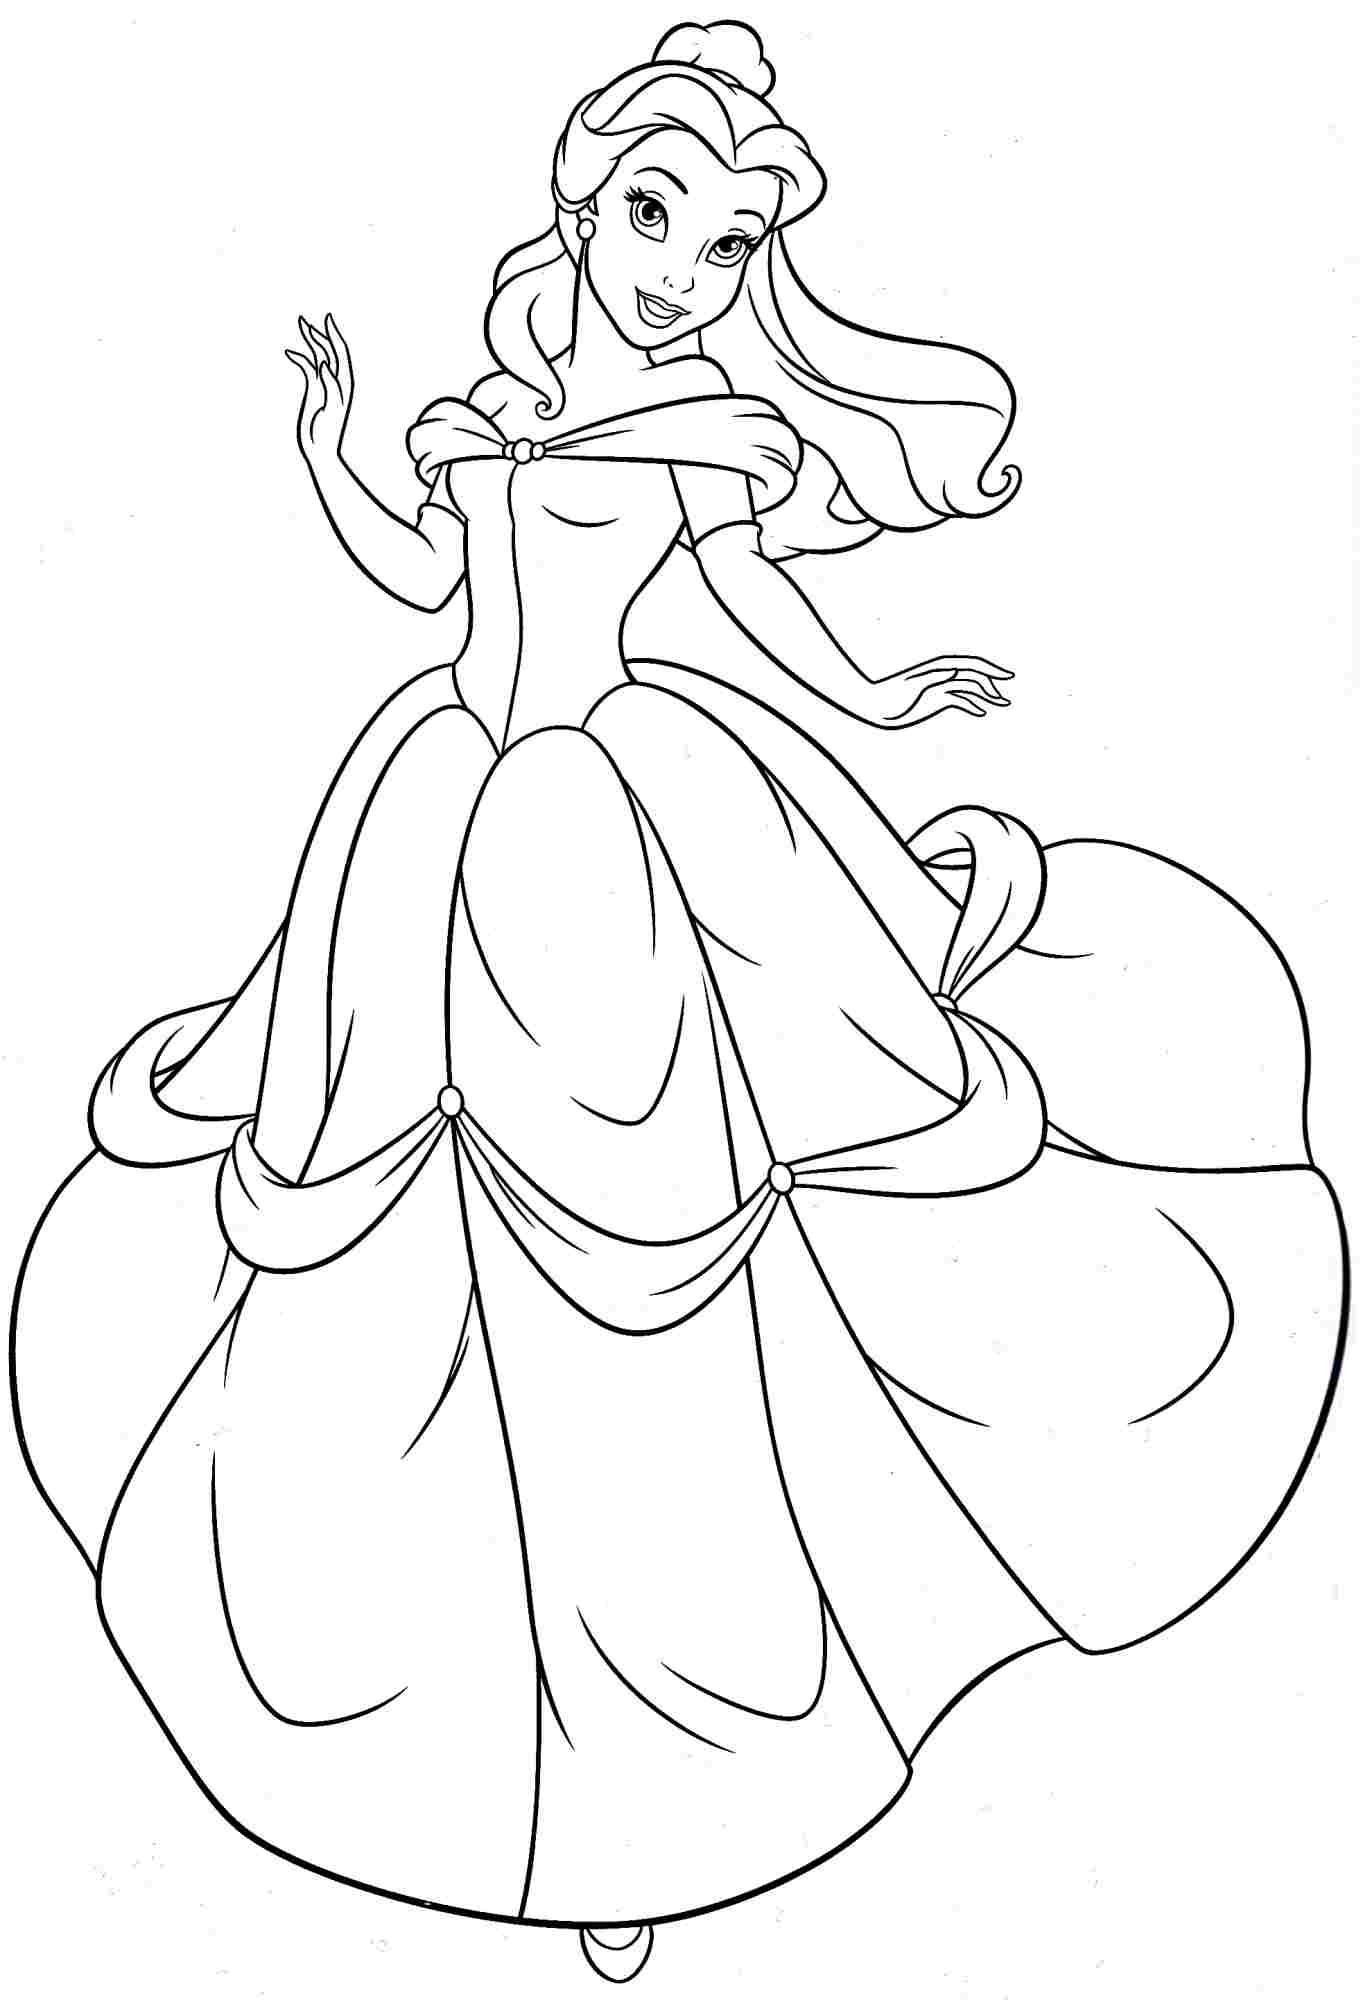 kid outline coloring page princess belle coloring pages to download and print for free outline coloring page kid